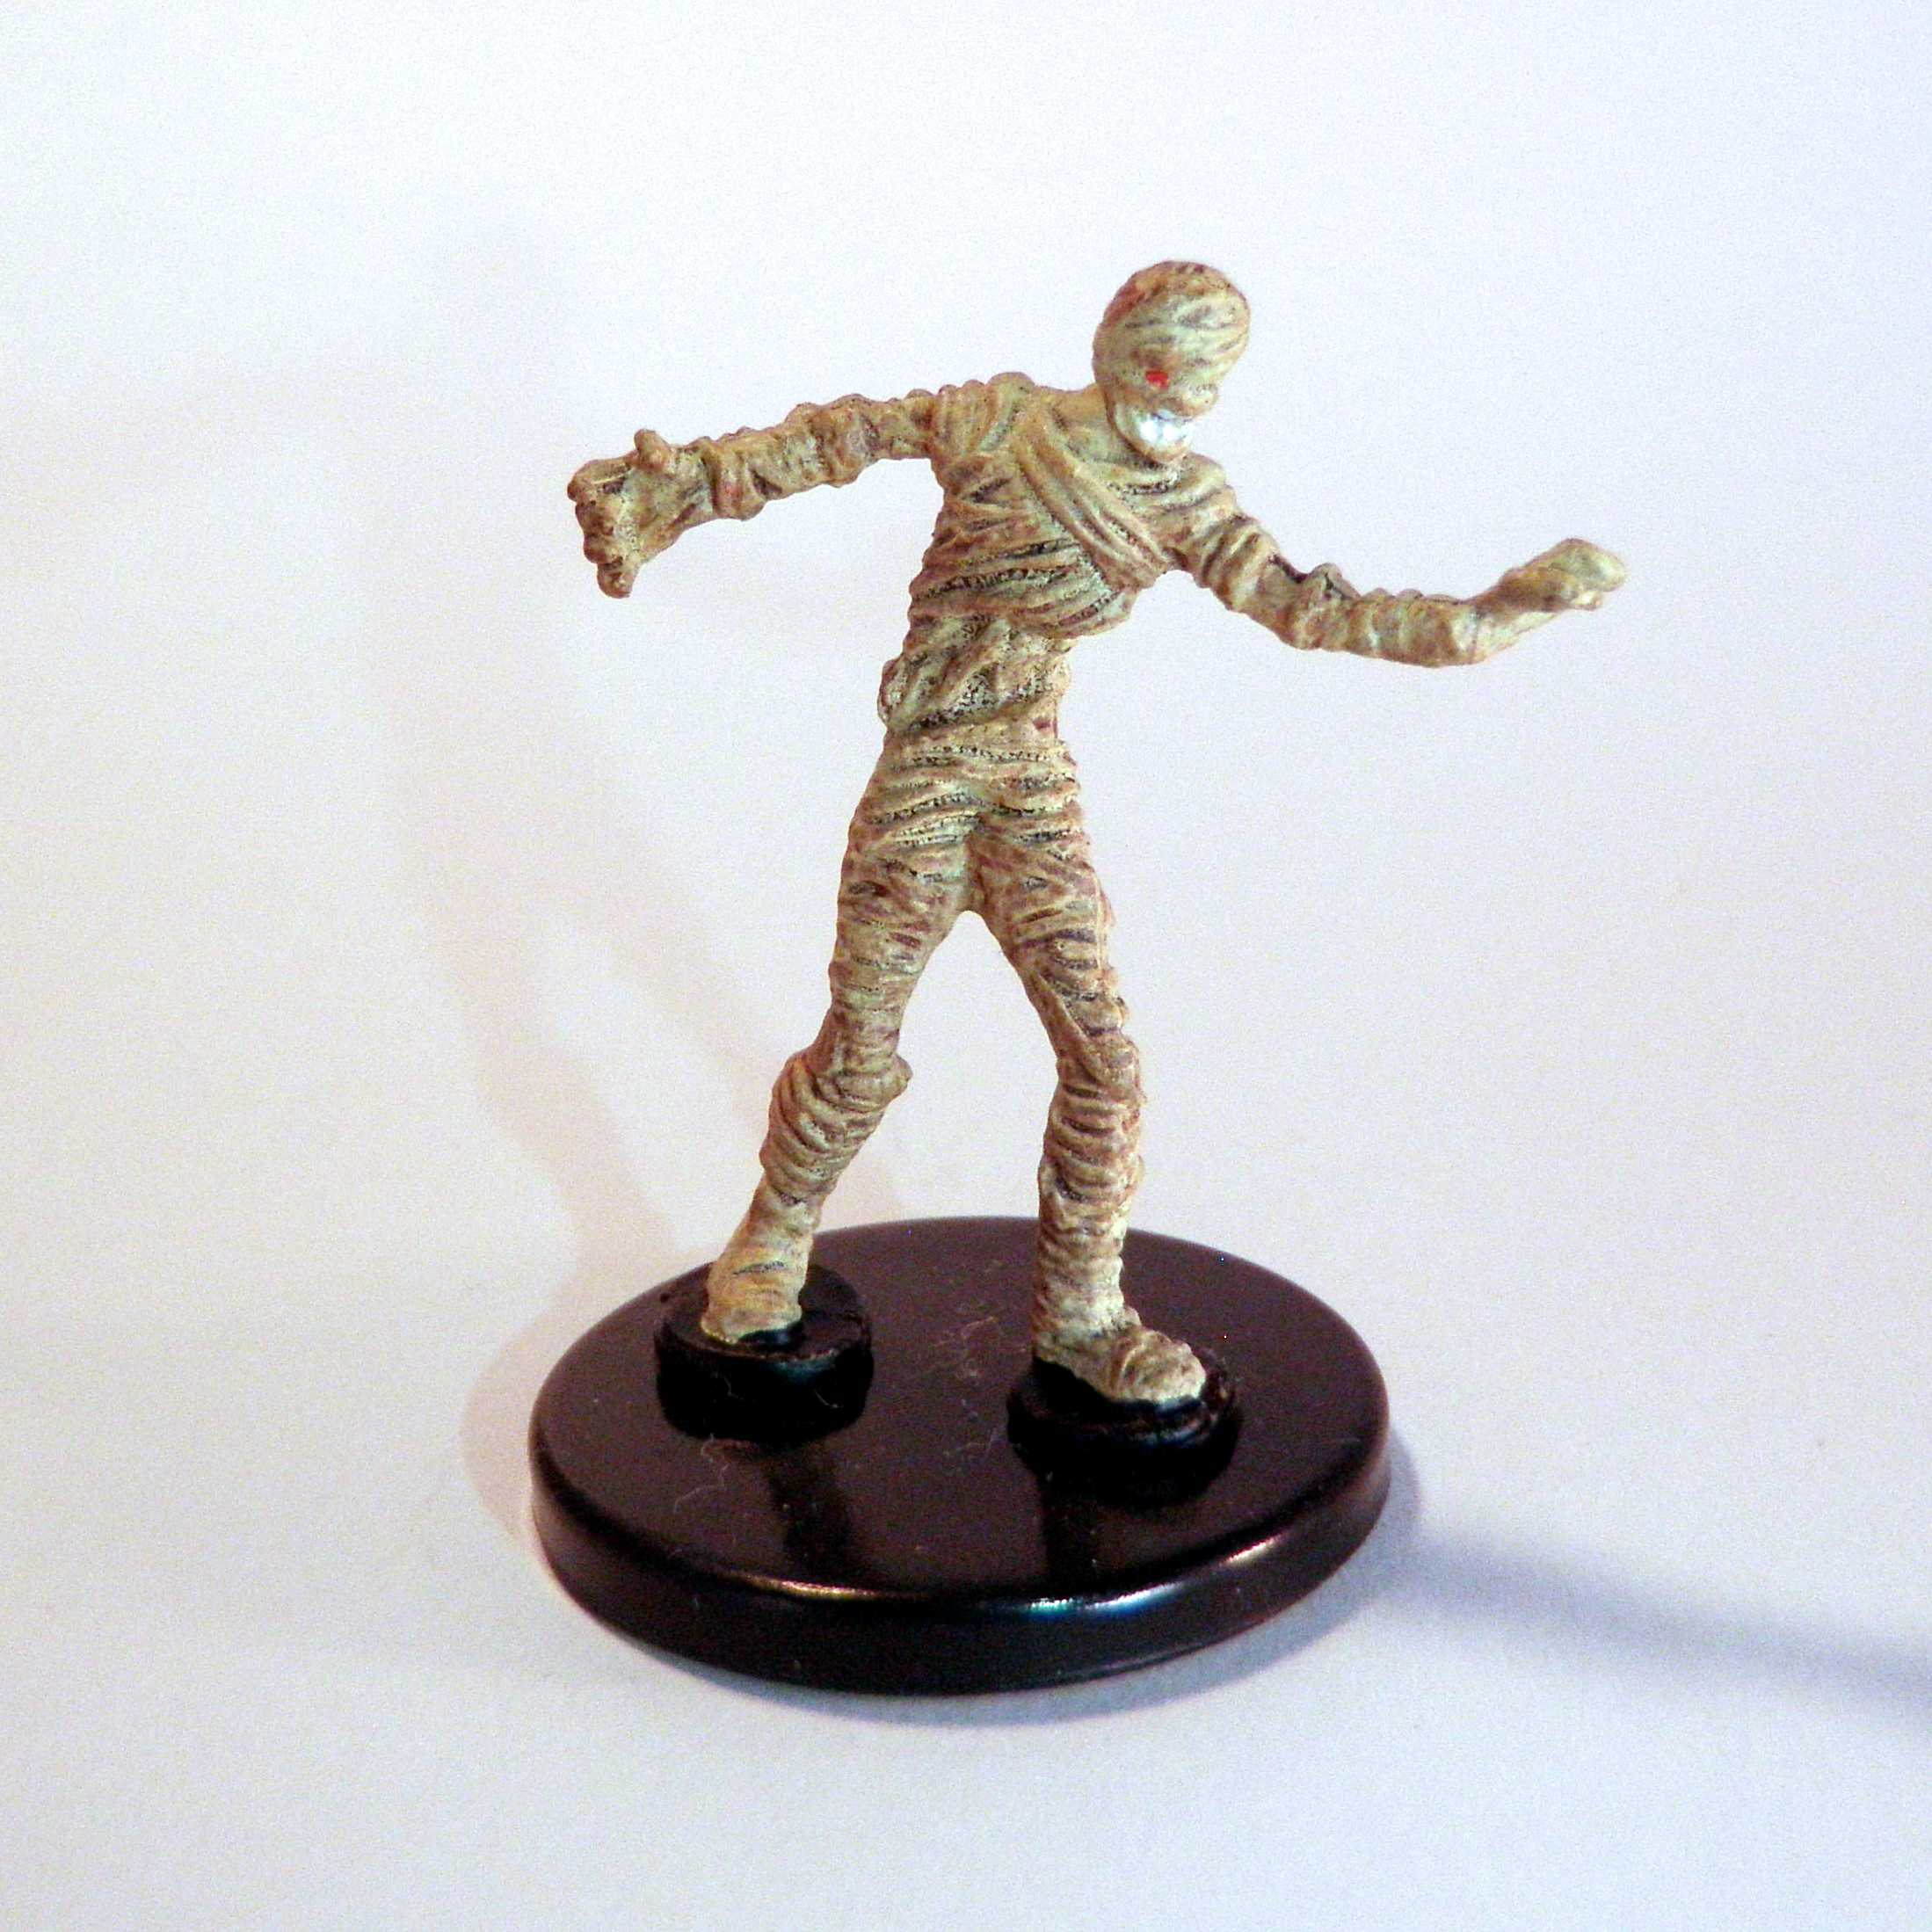 The most useful Pathfinder Battles miniatures for any fantasy game